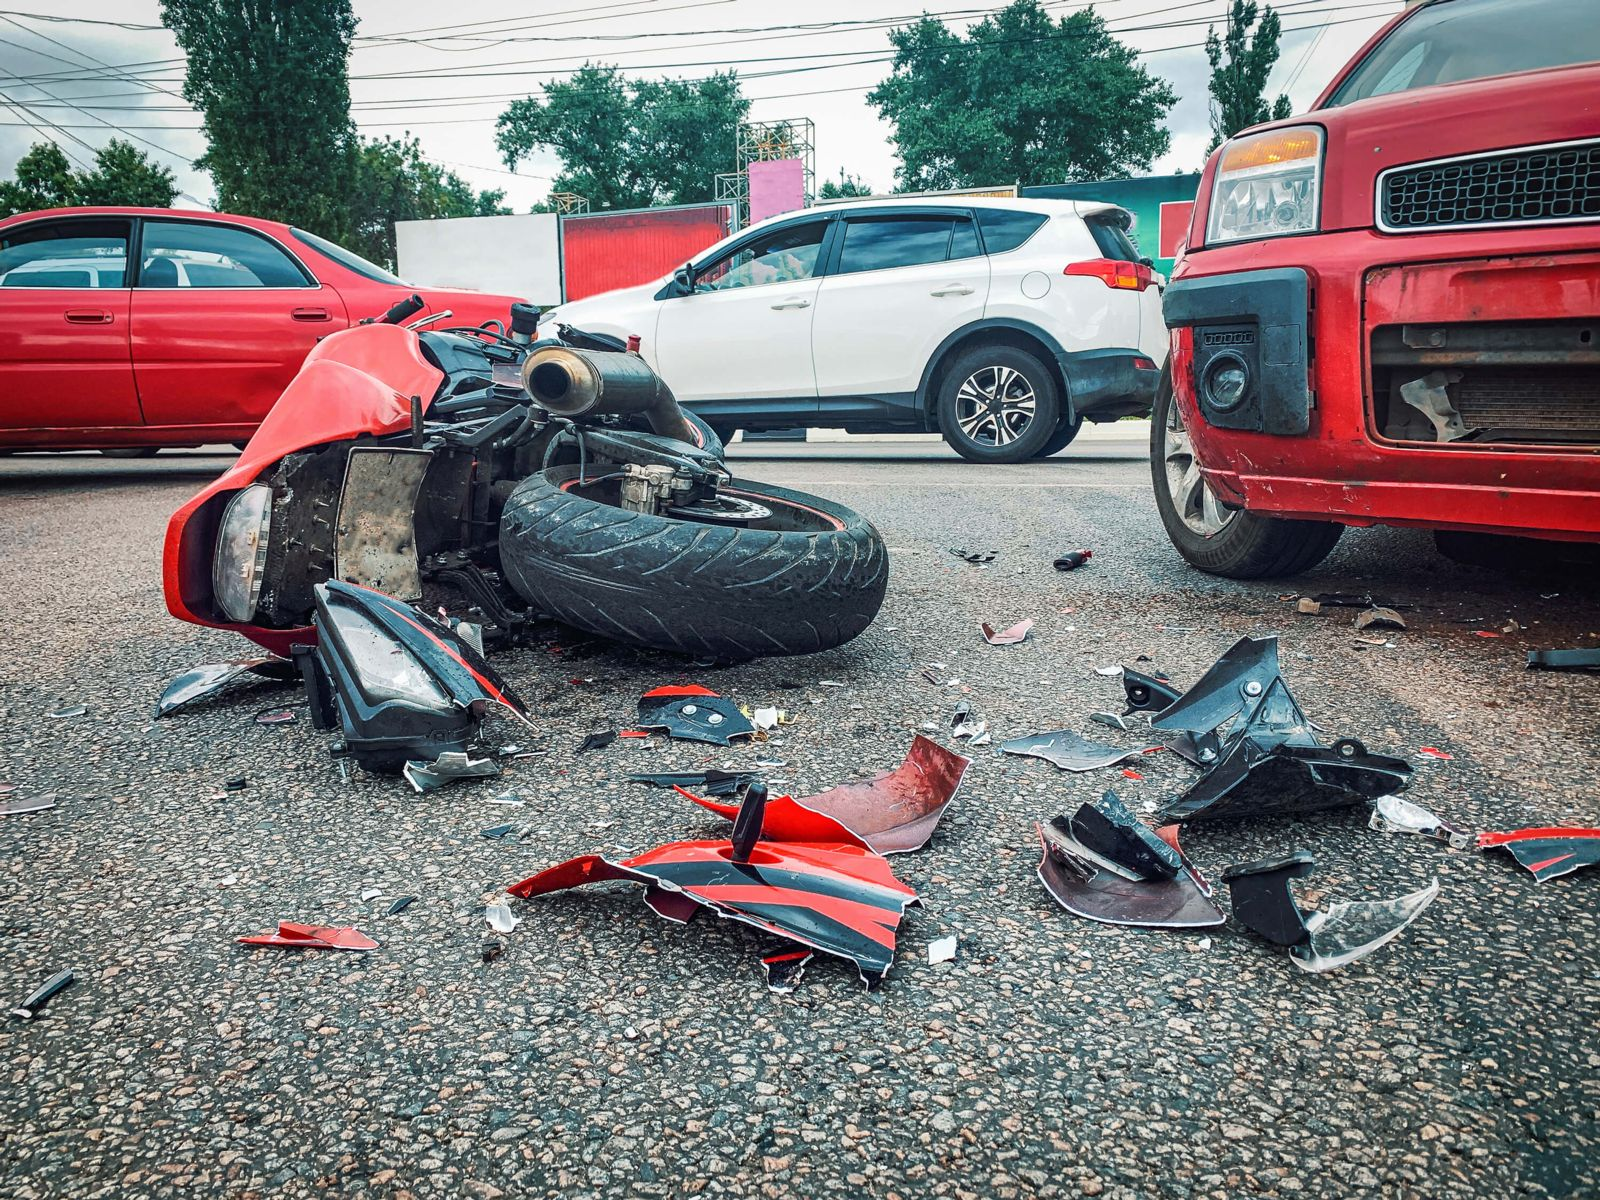 Motorcycle Crashes Caused By Car & Truck Drivers